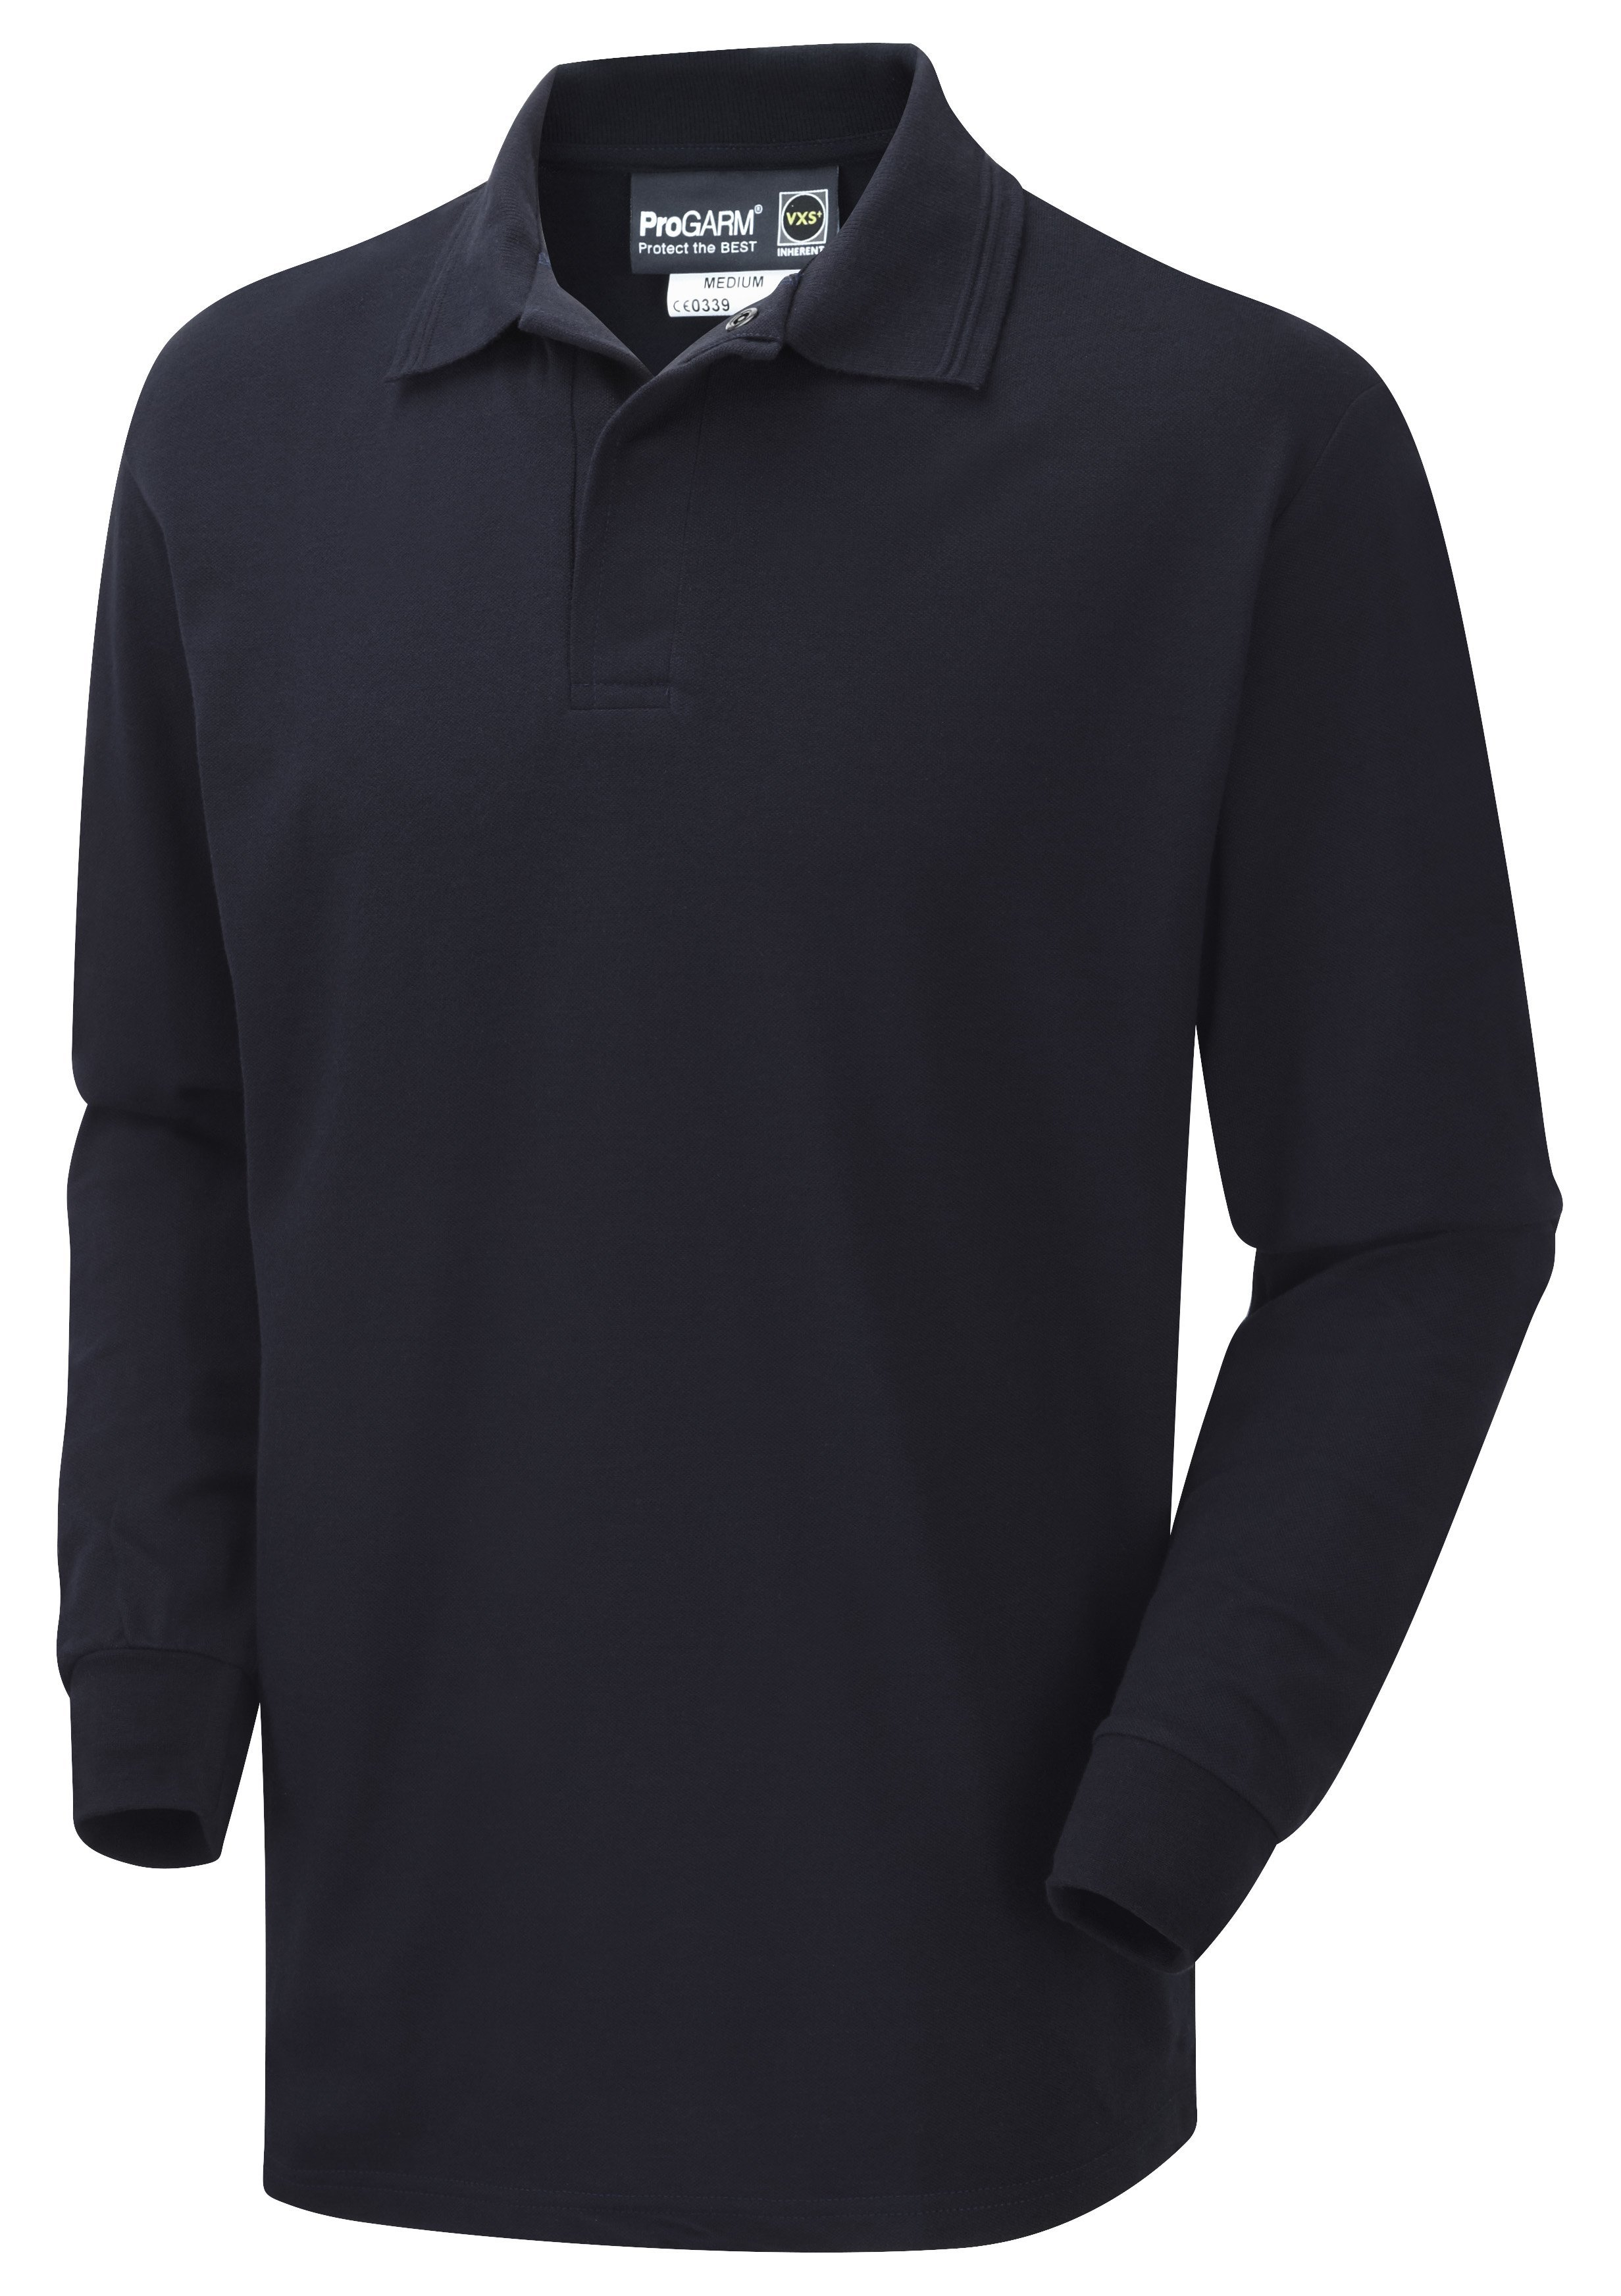 ProGARM 5200 ARC POLO SHIRT-0